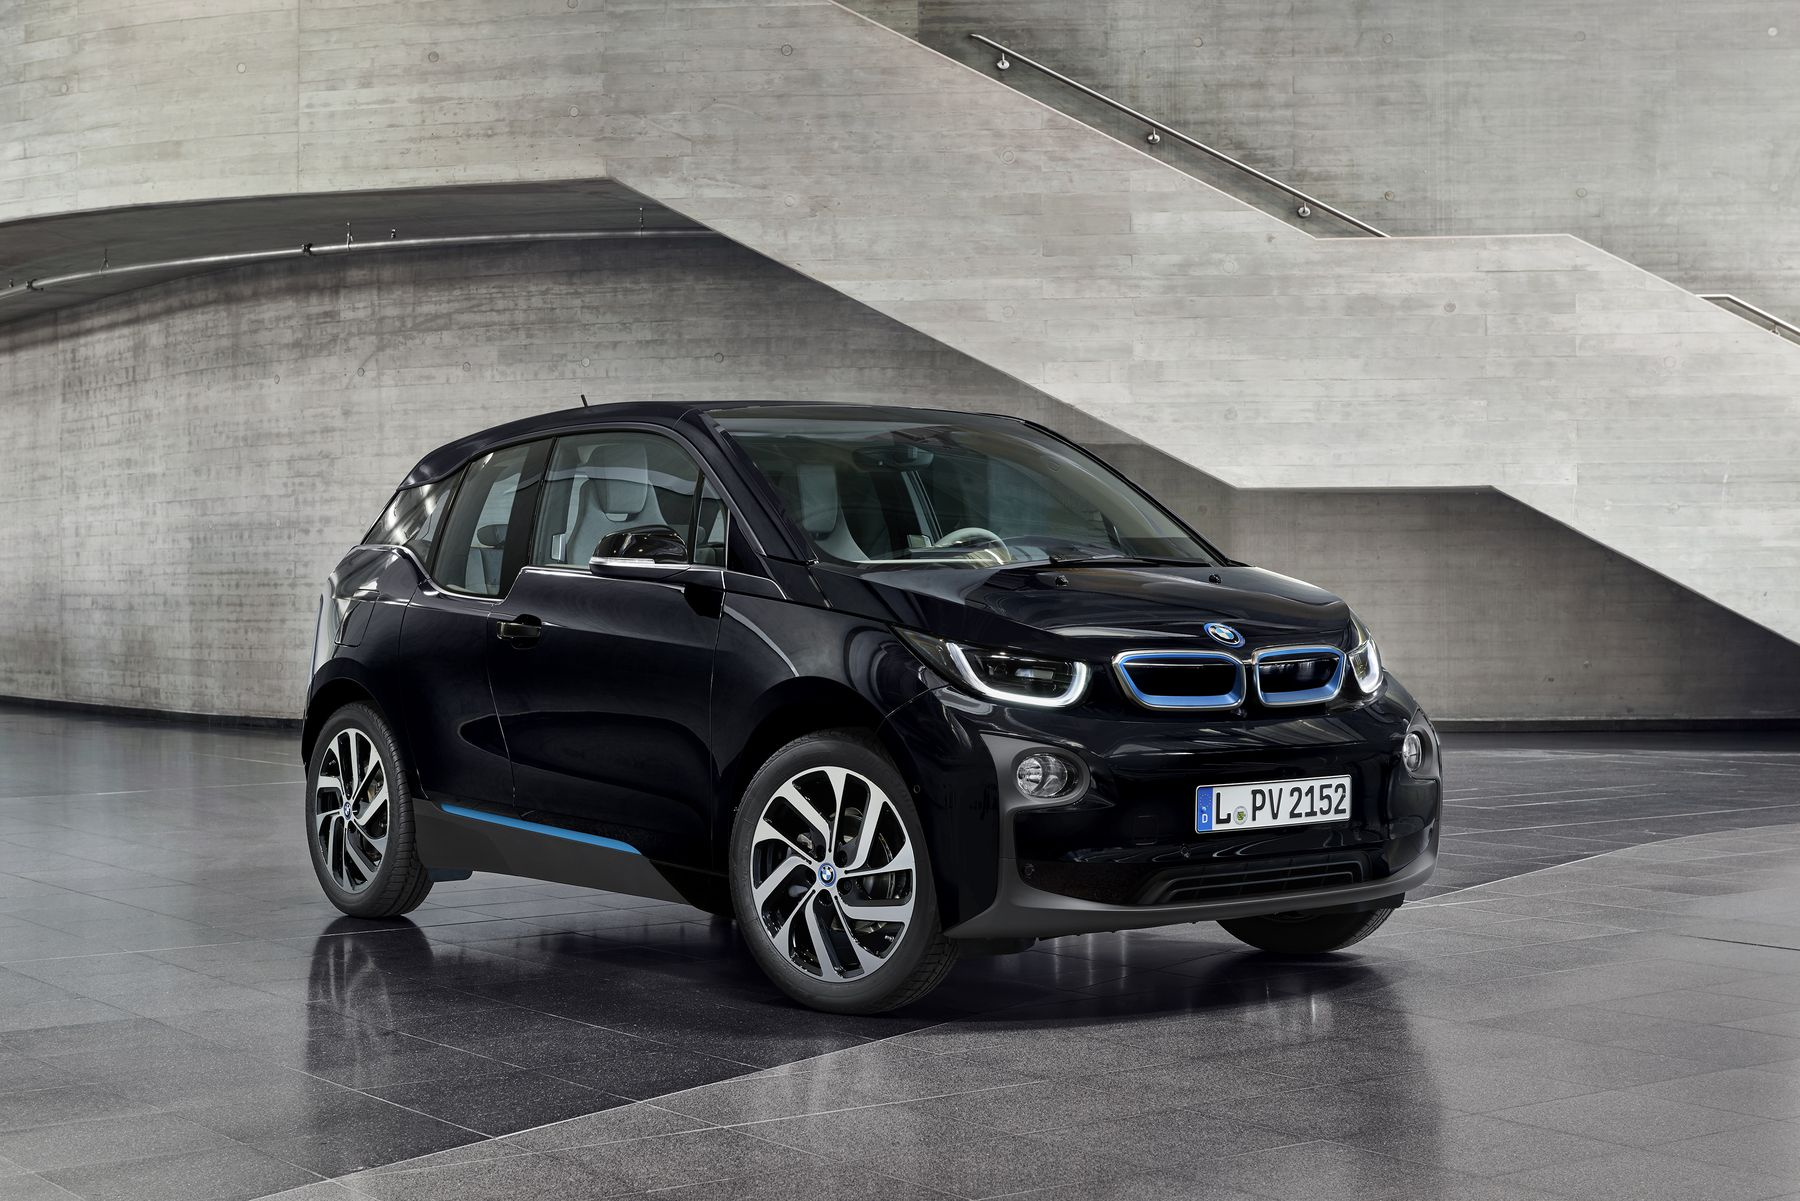 2017-BMW-i3-new-color-fluid-black | My Electric Car Forums